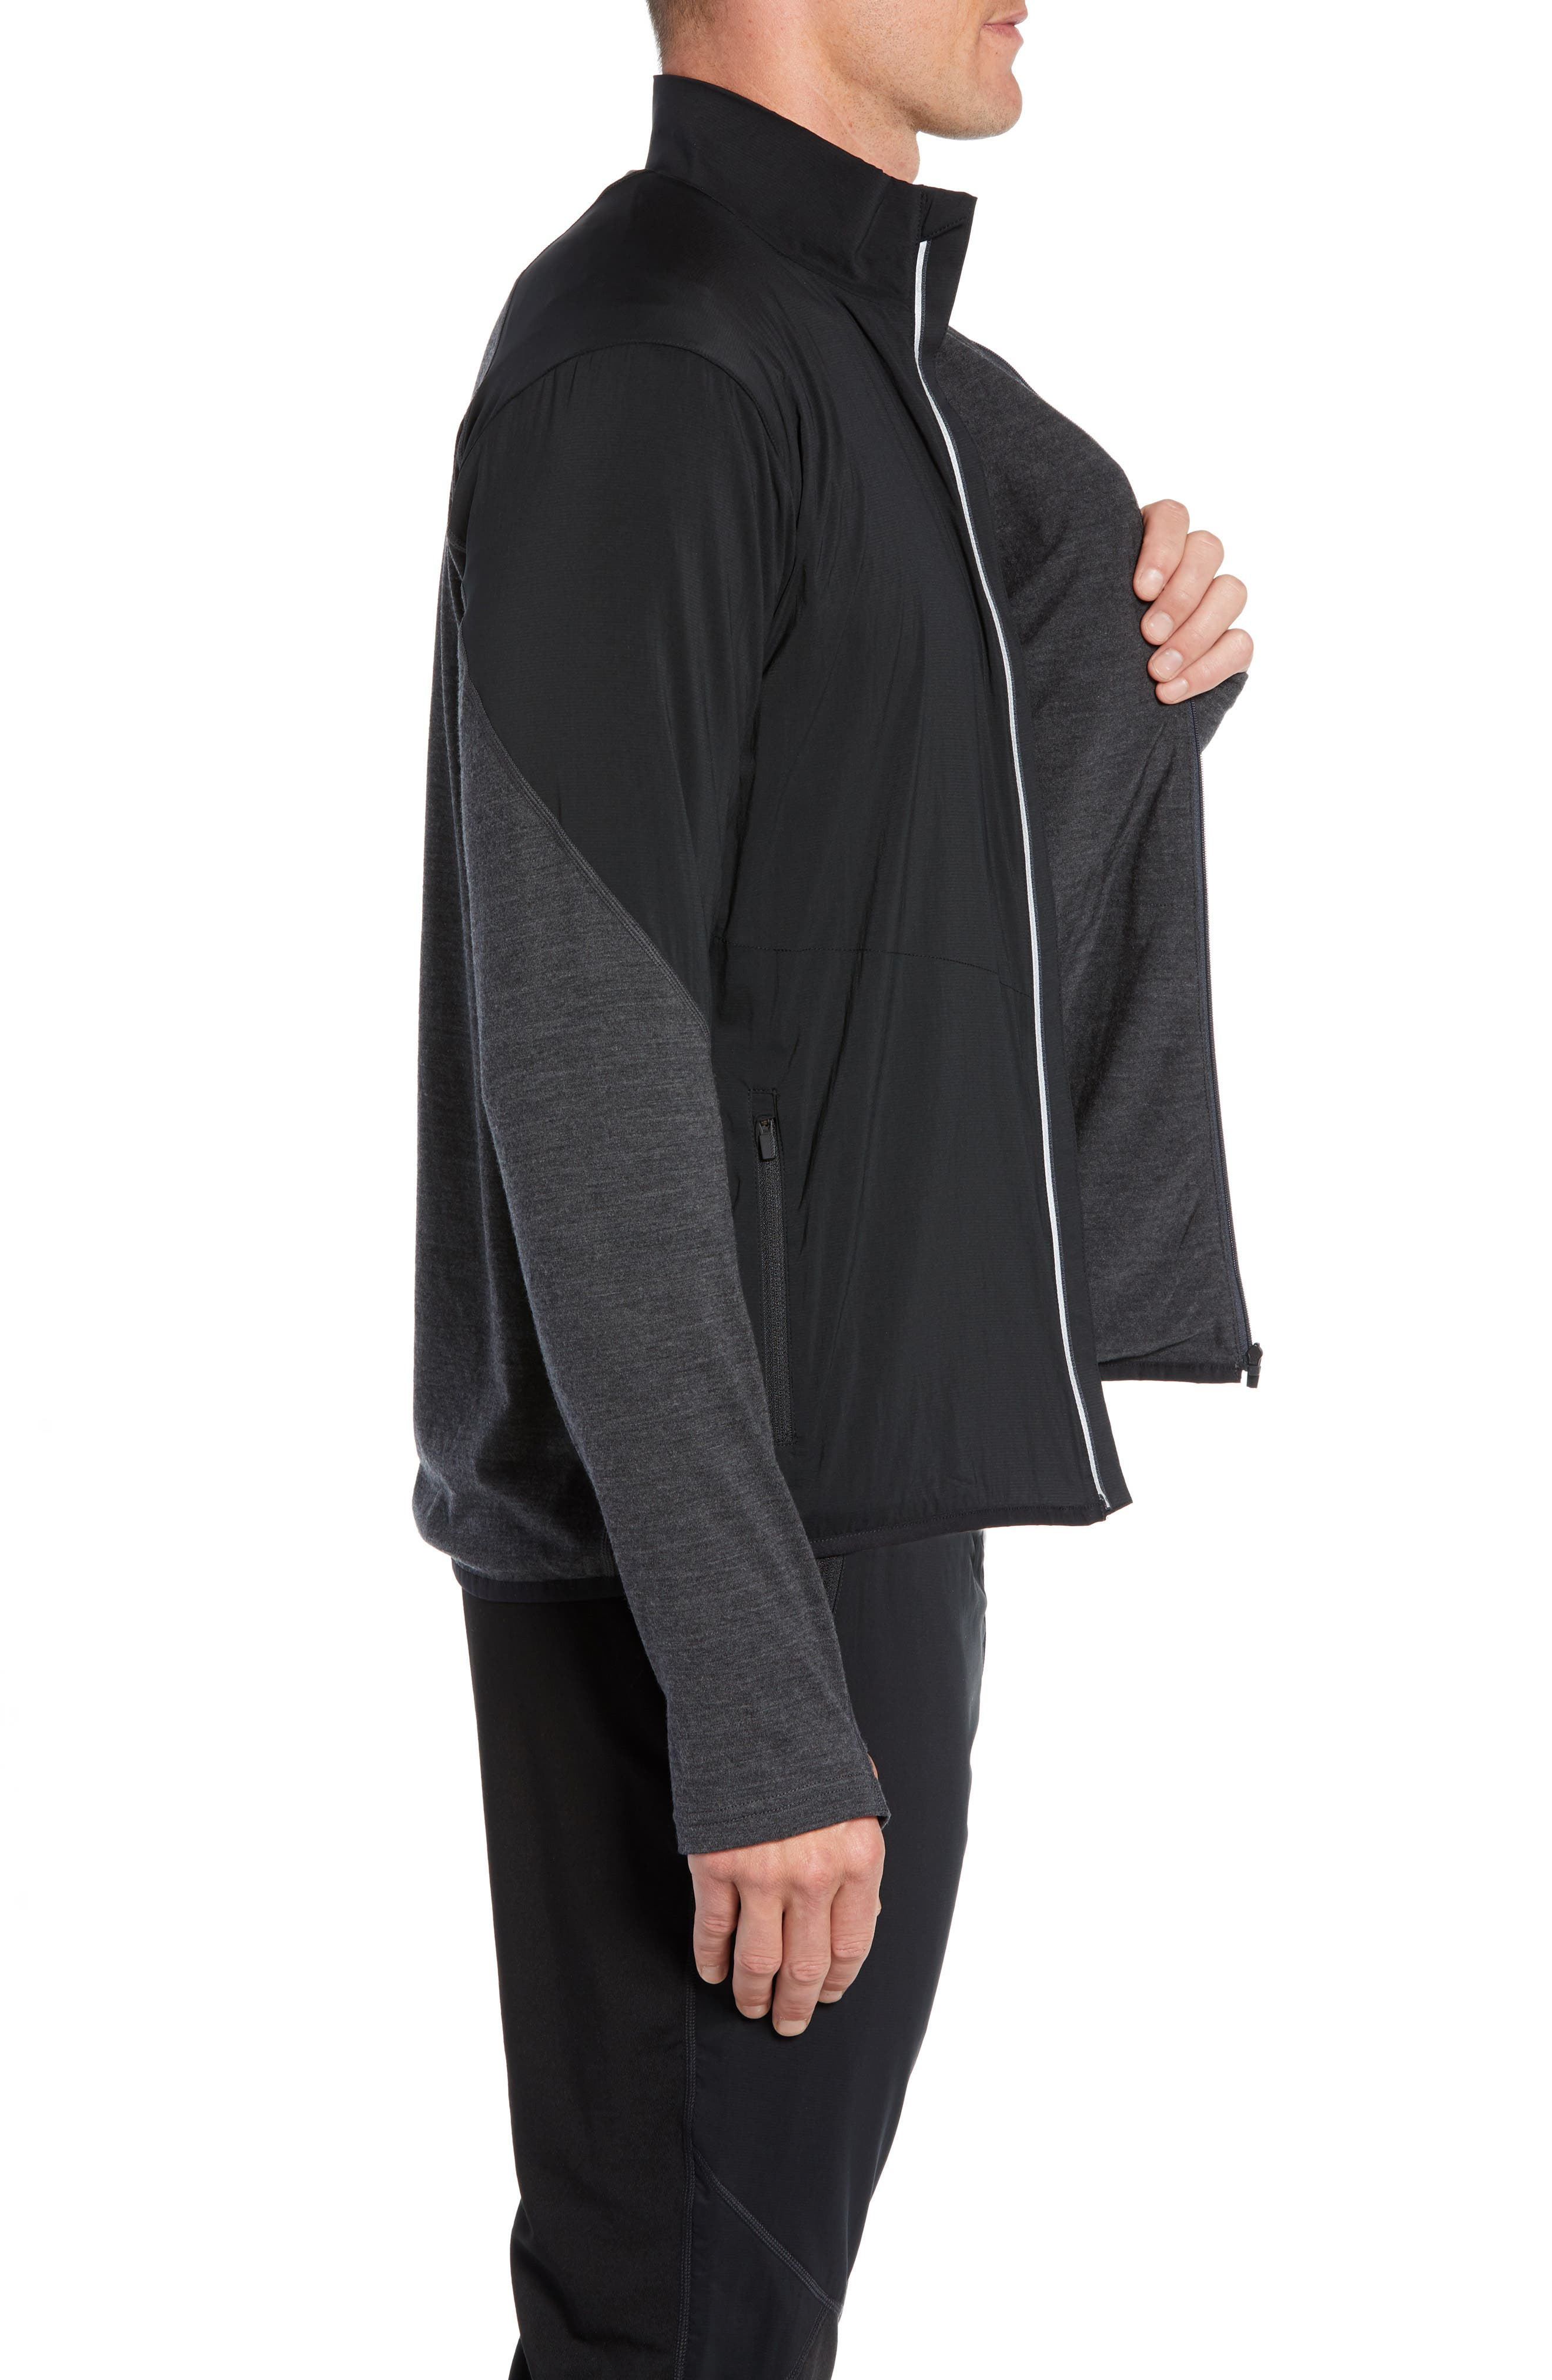 Tech Trainer Hybrid Jacket,                             Alternate thumbnail 3, color,                             BLACK